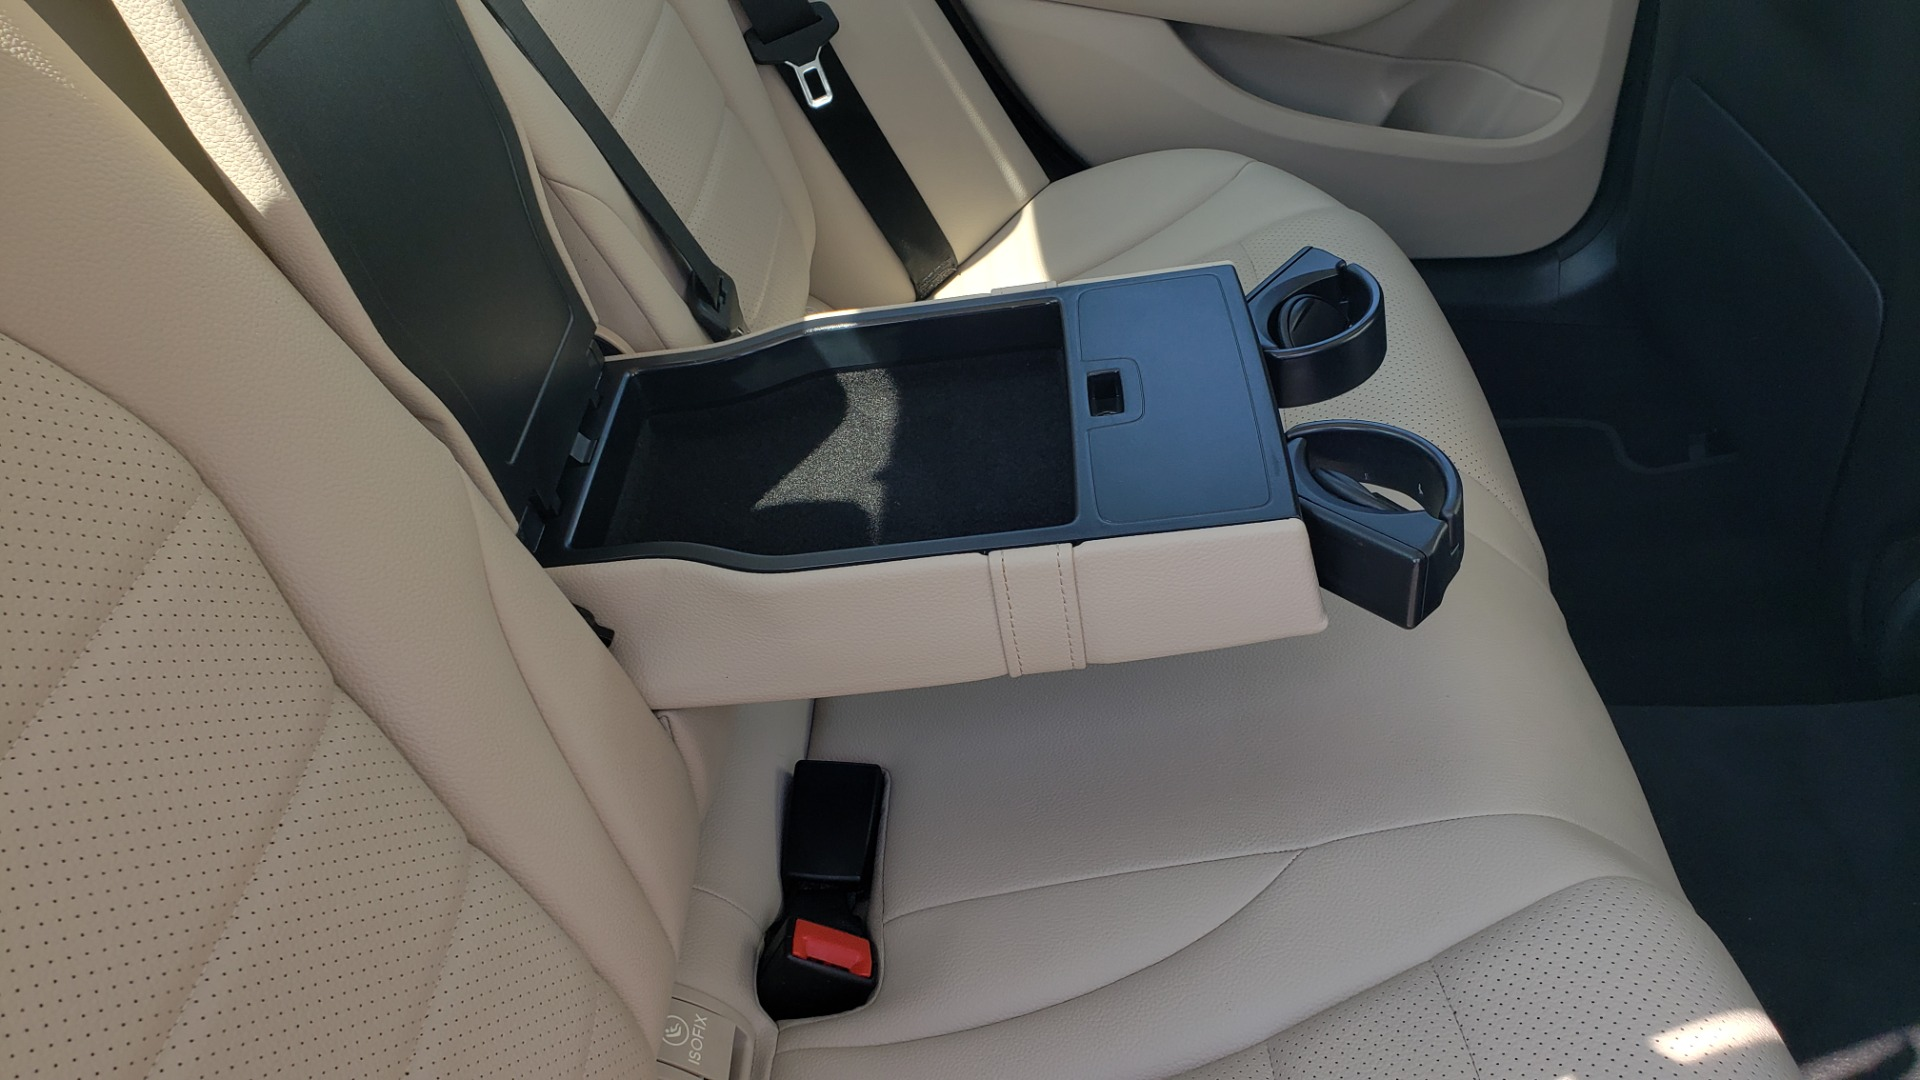 Used 2018 Mercedes-Benz C-CLASS C 300 PREMIUM / KEYLESS-GO / APPLE / PANO-ROOF / REARVIEW for sale $28,295 at Formula Imports in Charlotte NC 28227 67